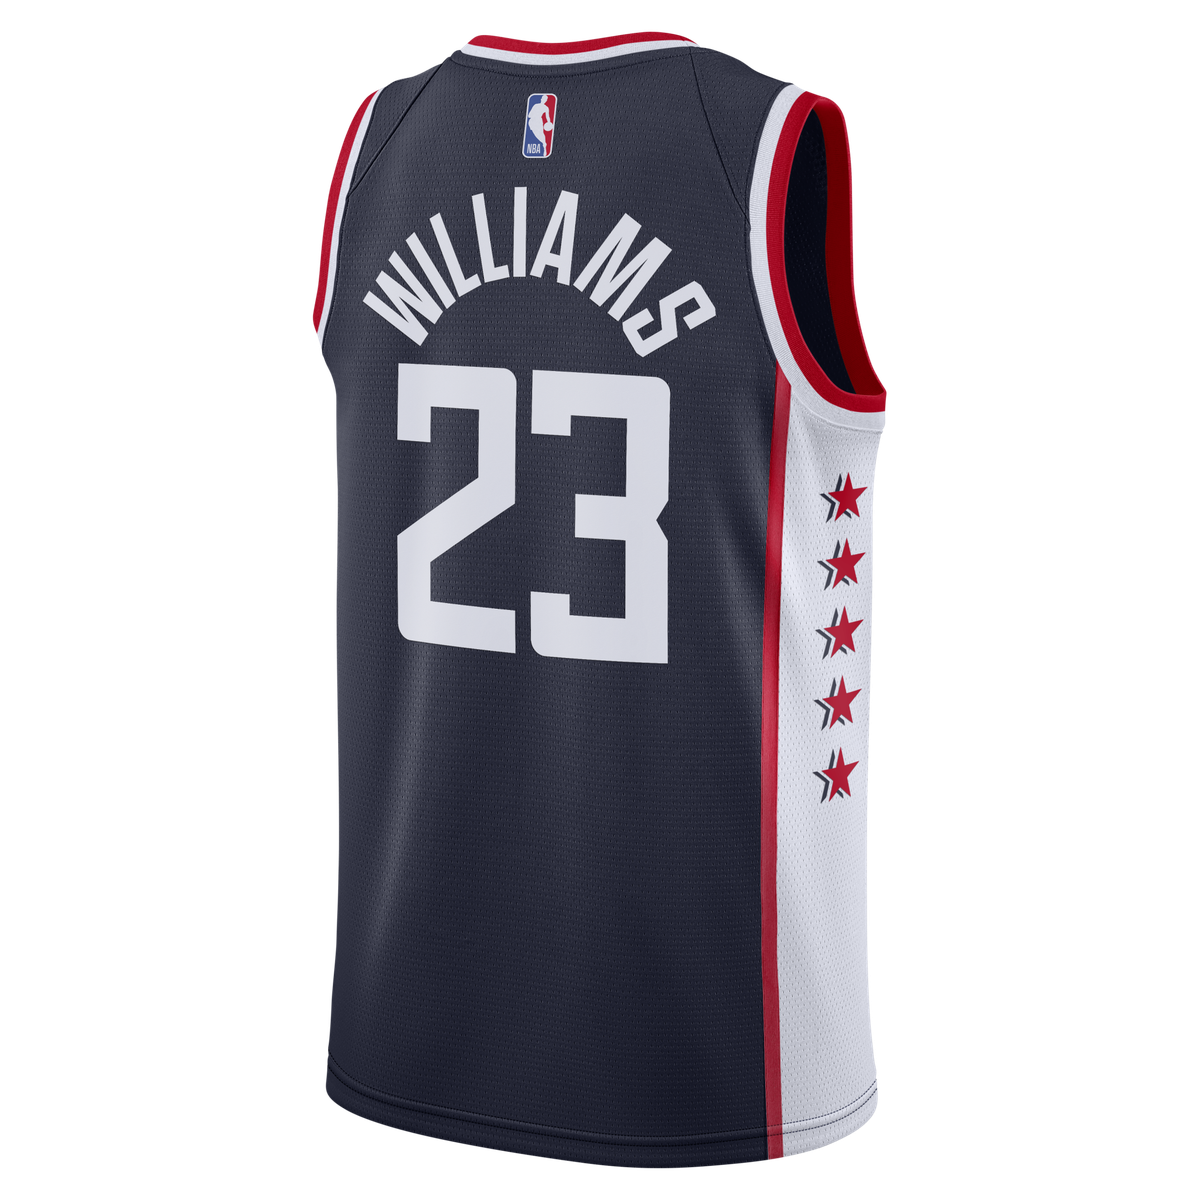 788e1c61f9d Lou Williams Nike Swingman Jersey - City Edition for  109.99 Fanatics